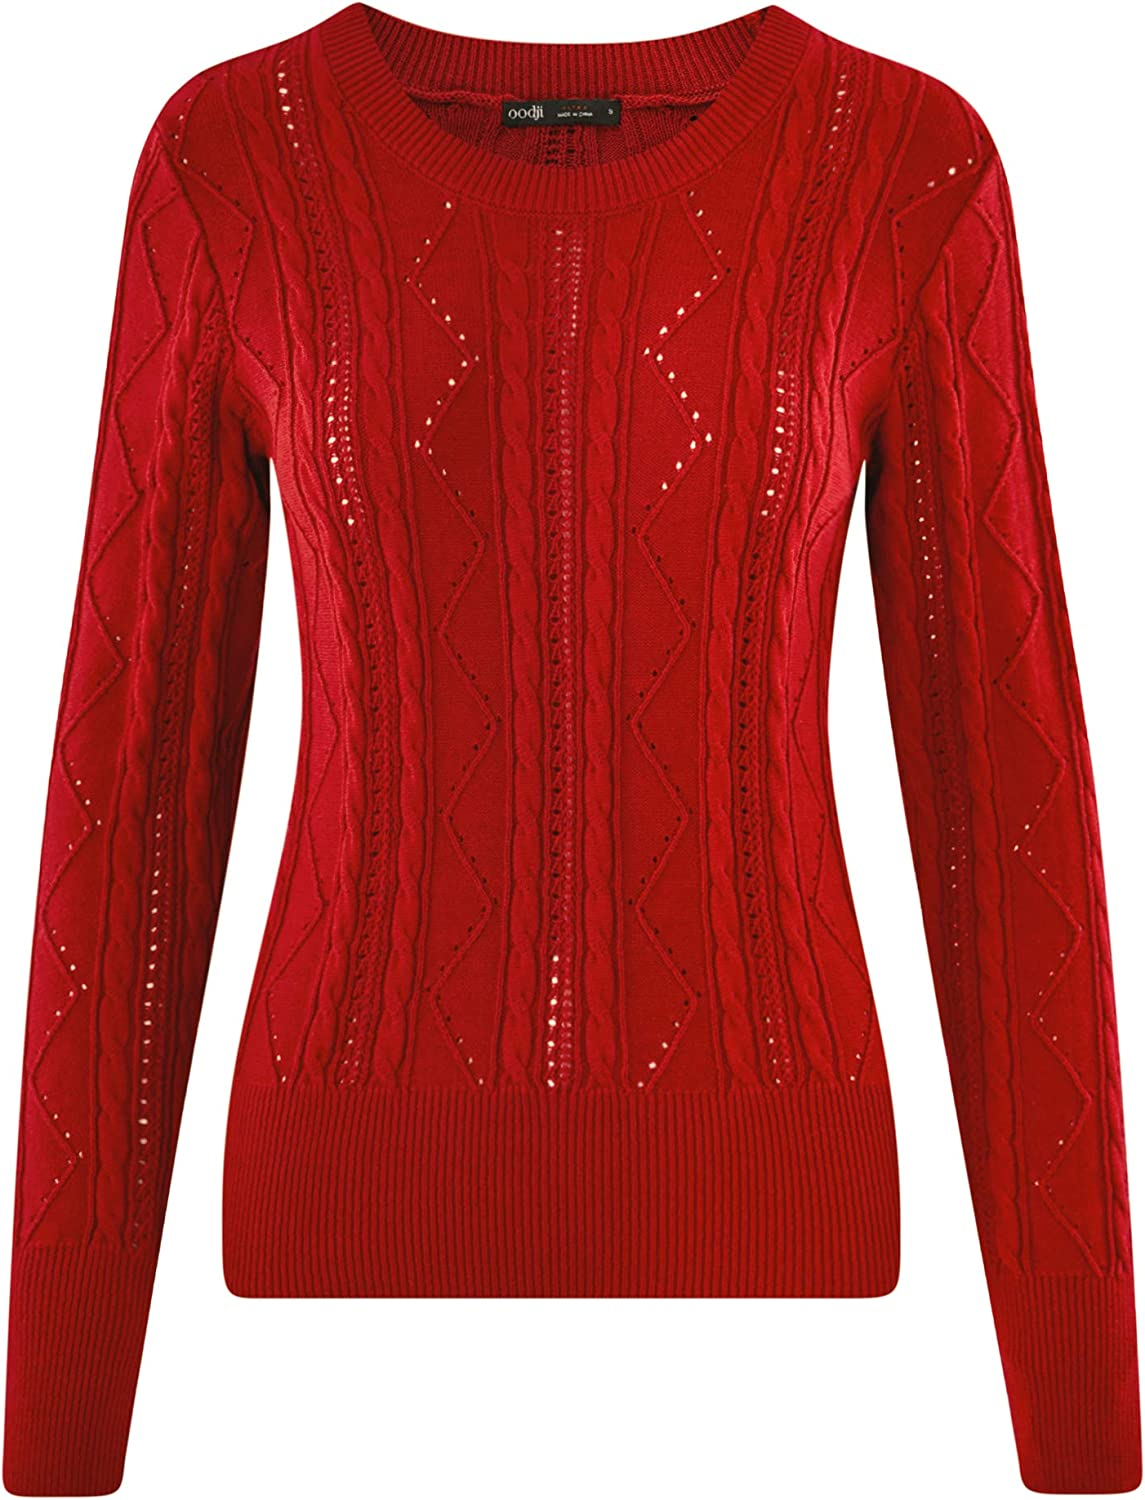 oodji Ultra Womens Textured Crew Neck Pullover